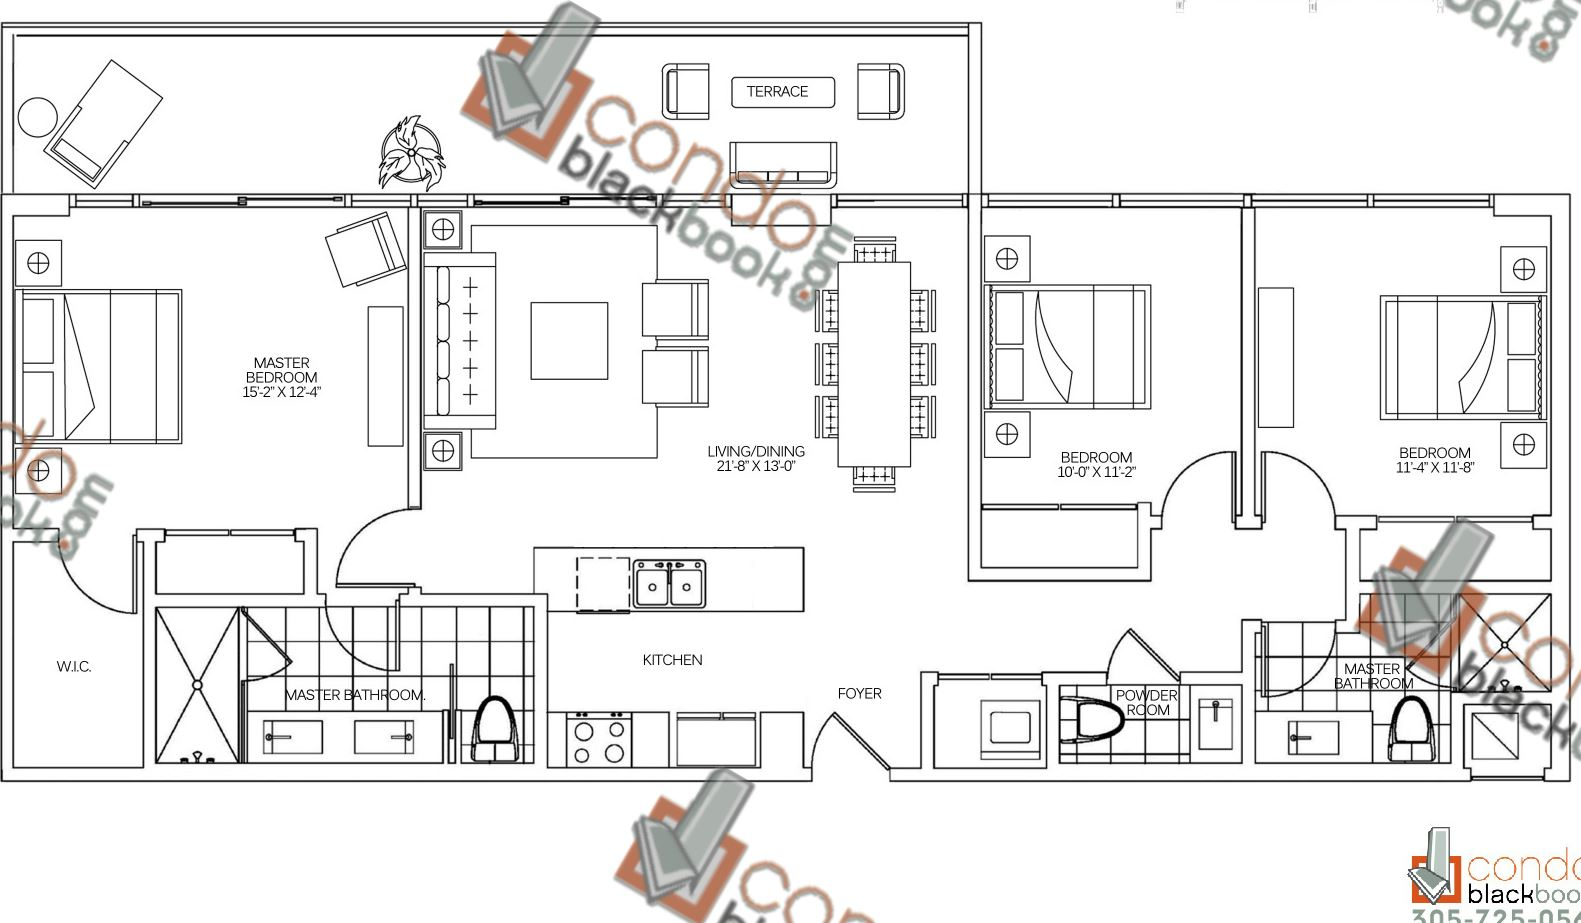 Floor plan for 400 Sunny Isles Sunny Isles Beach, model FLAT, line 07F, 3/2,5 bedrooms, 1,542 sq ft